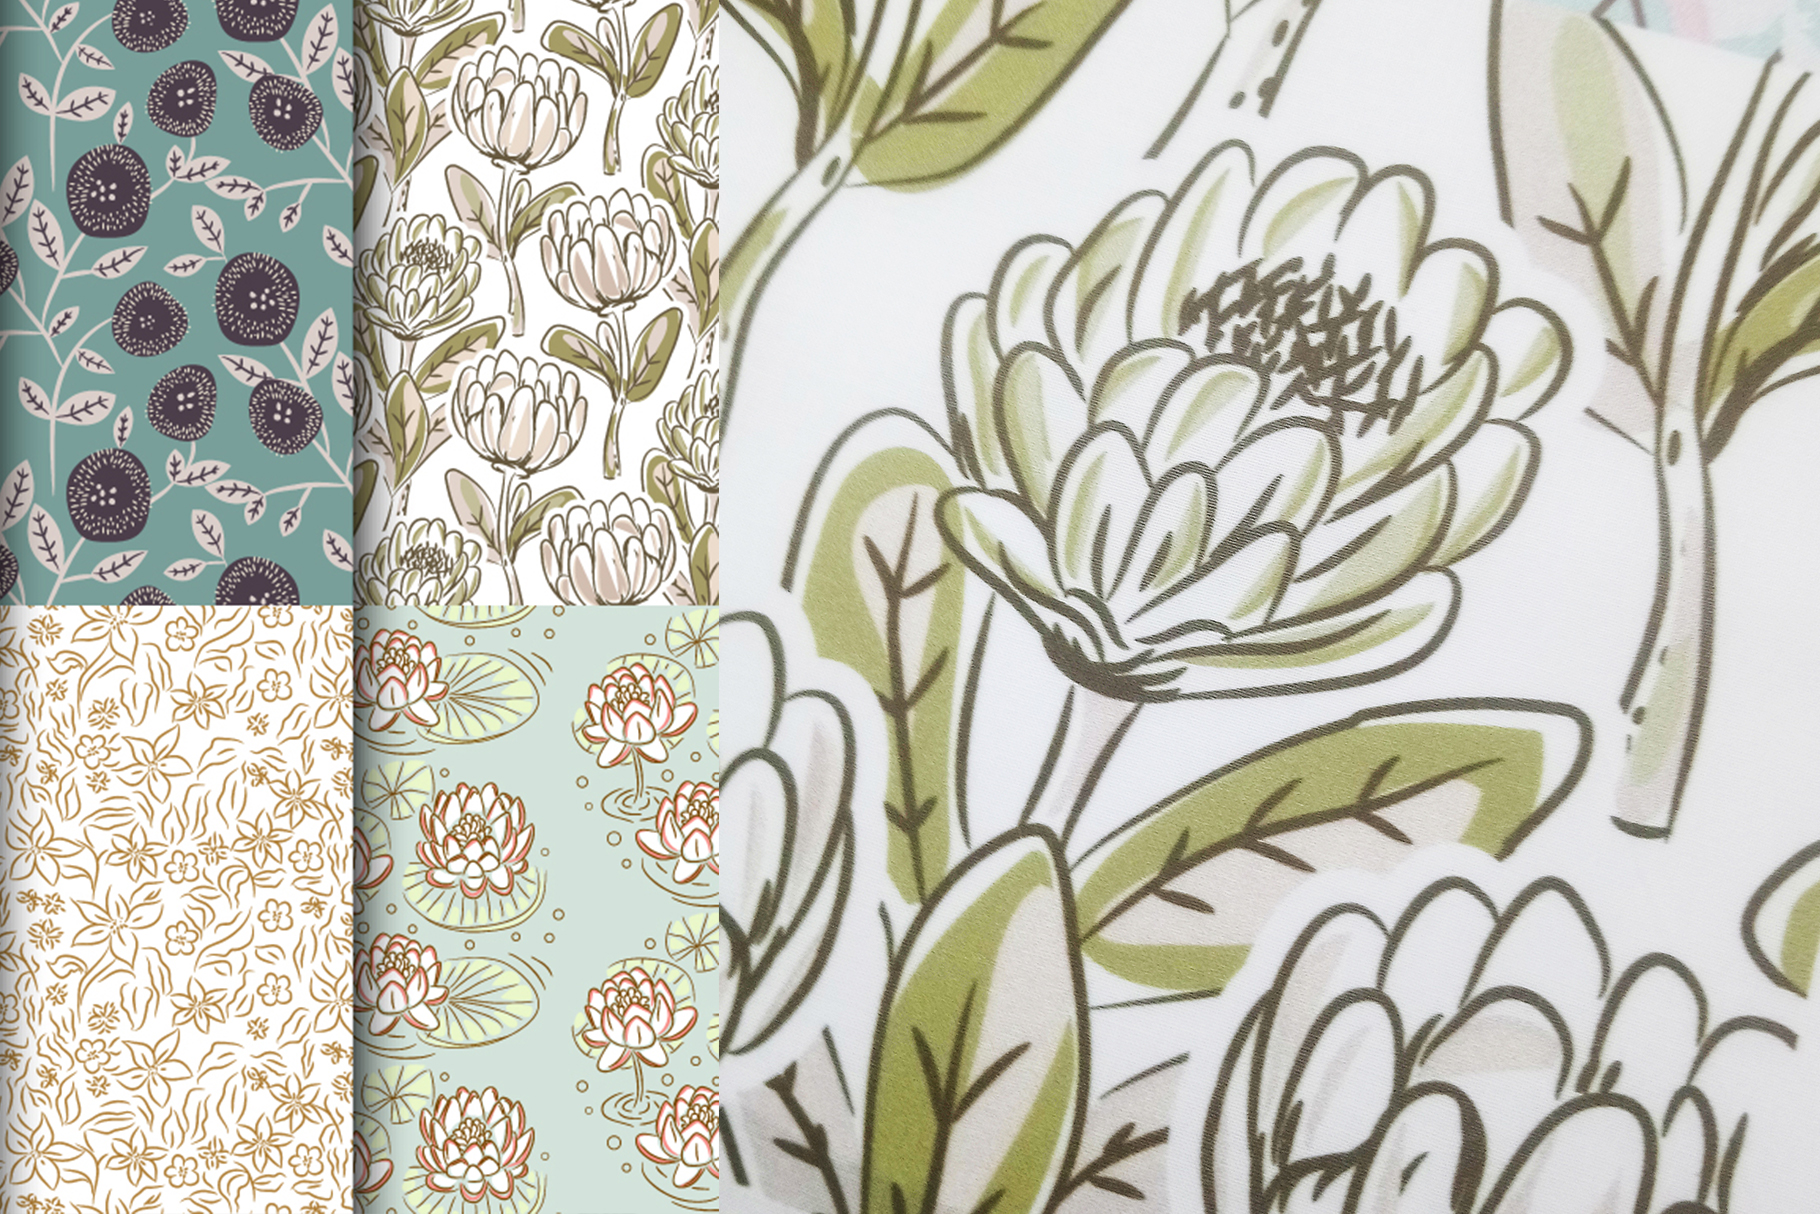 Floral Meadow - Seamless Patterns example image 2